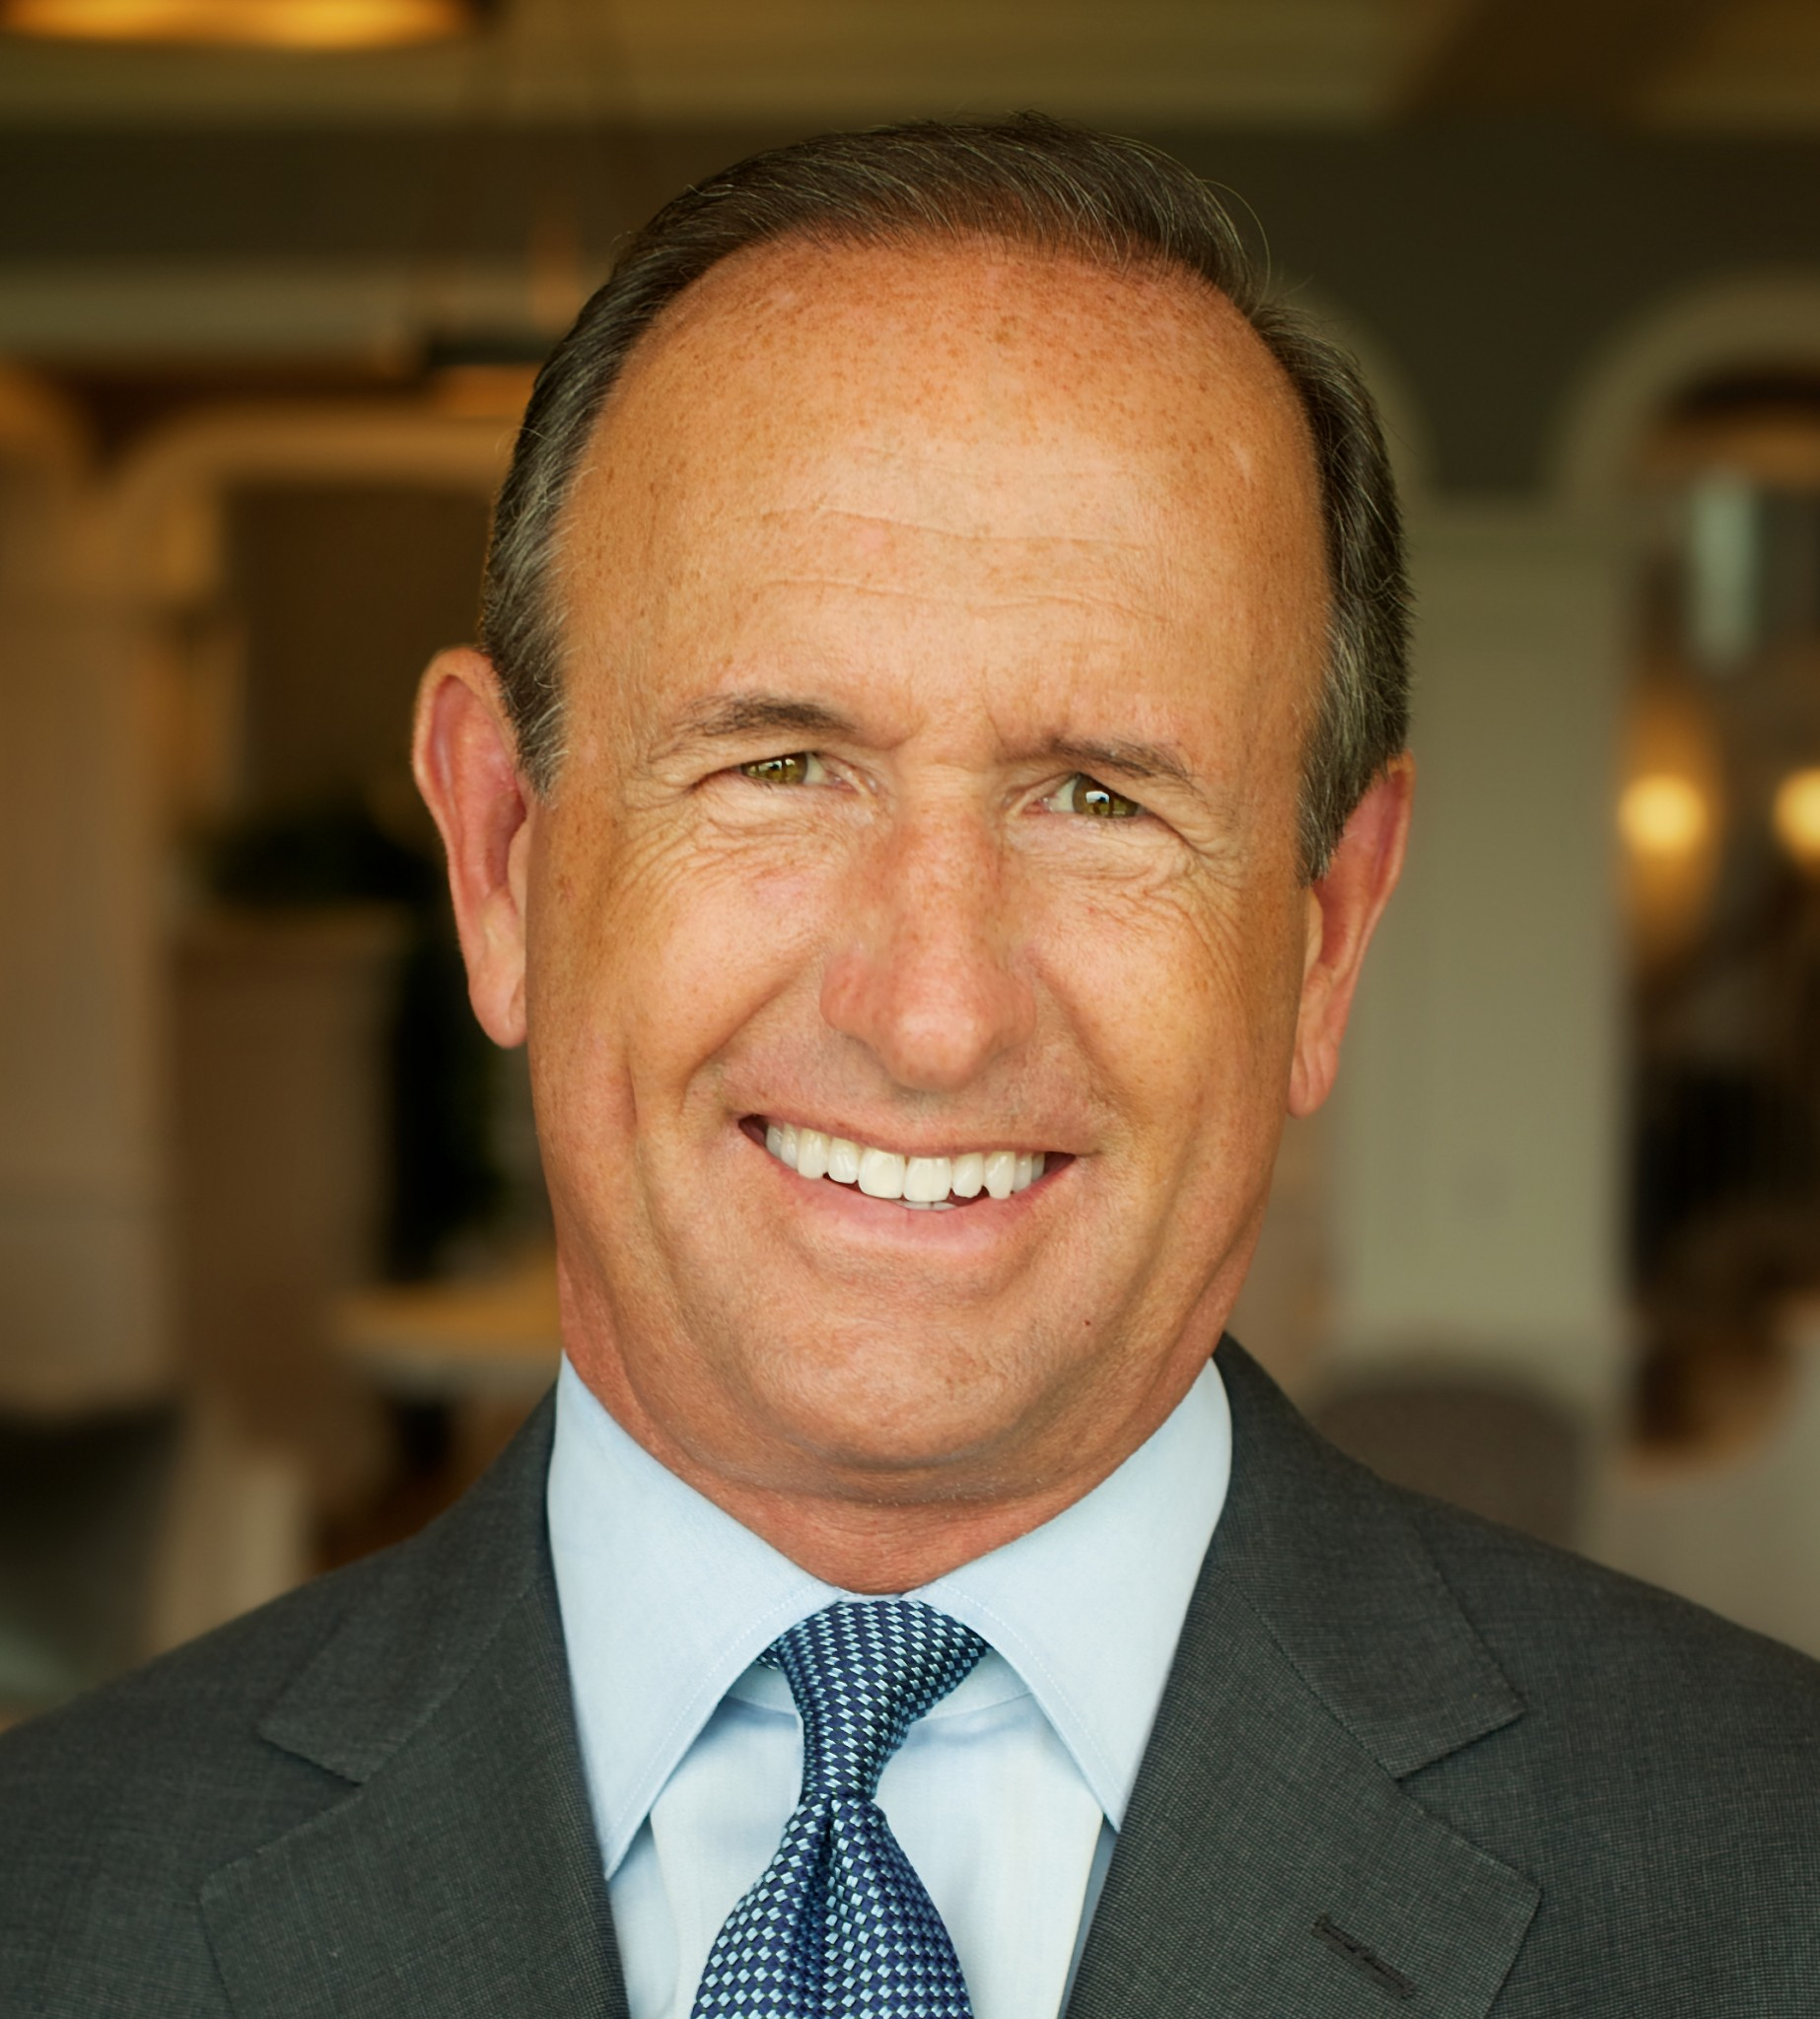 Dick Devos, President, The Windquest Group